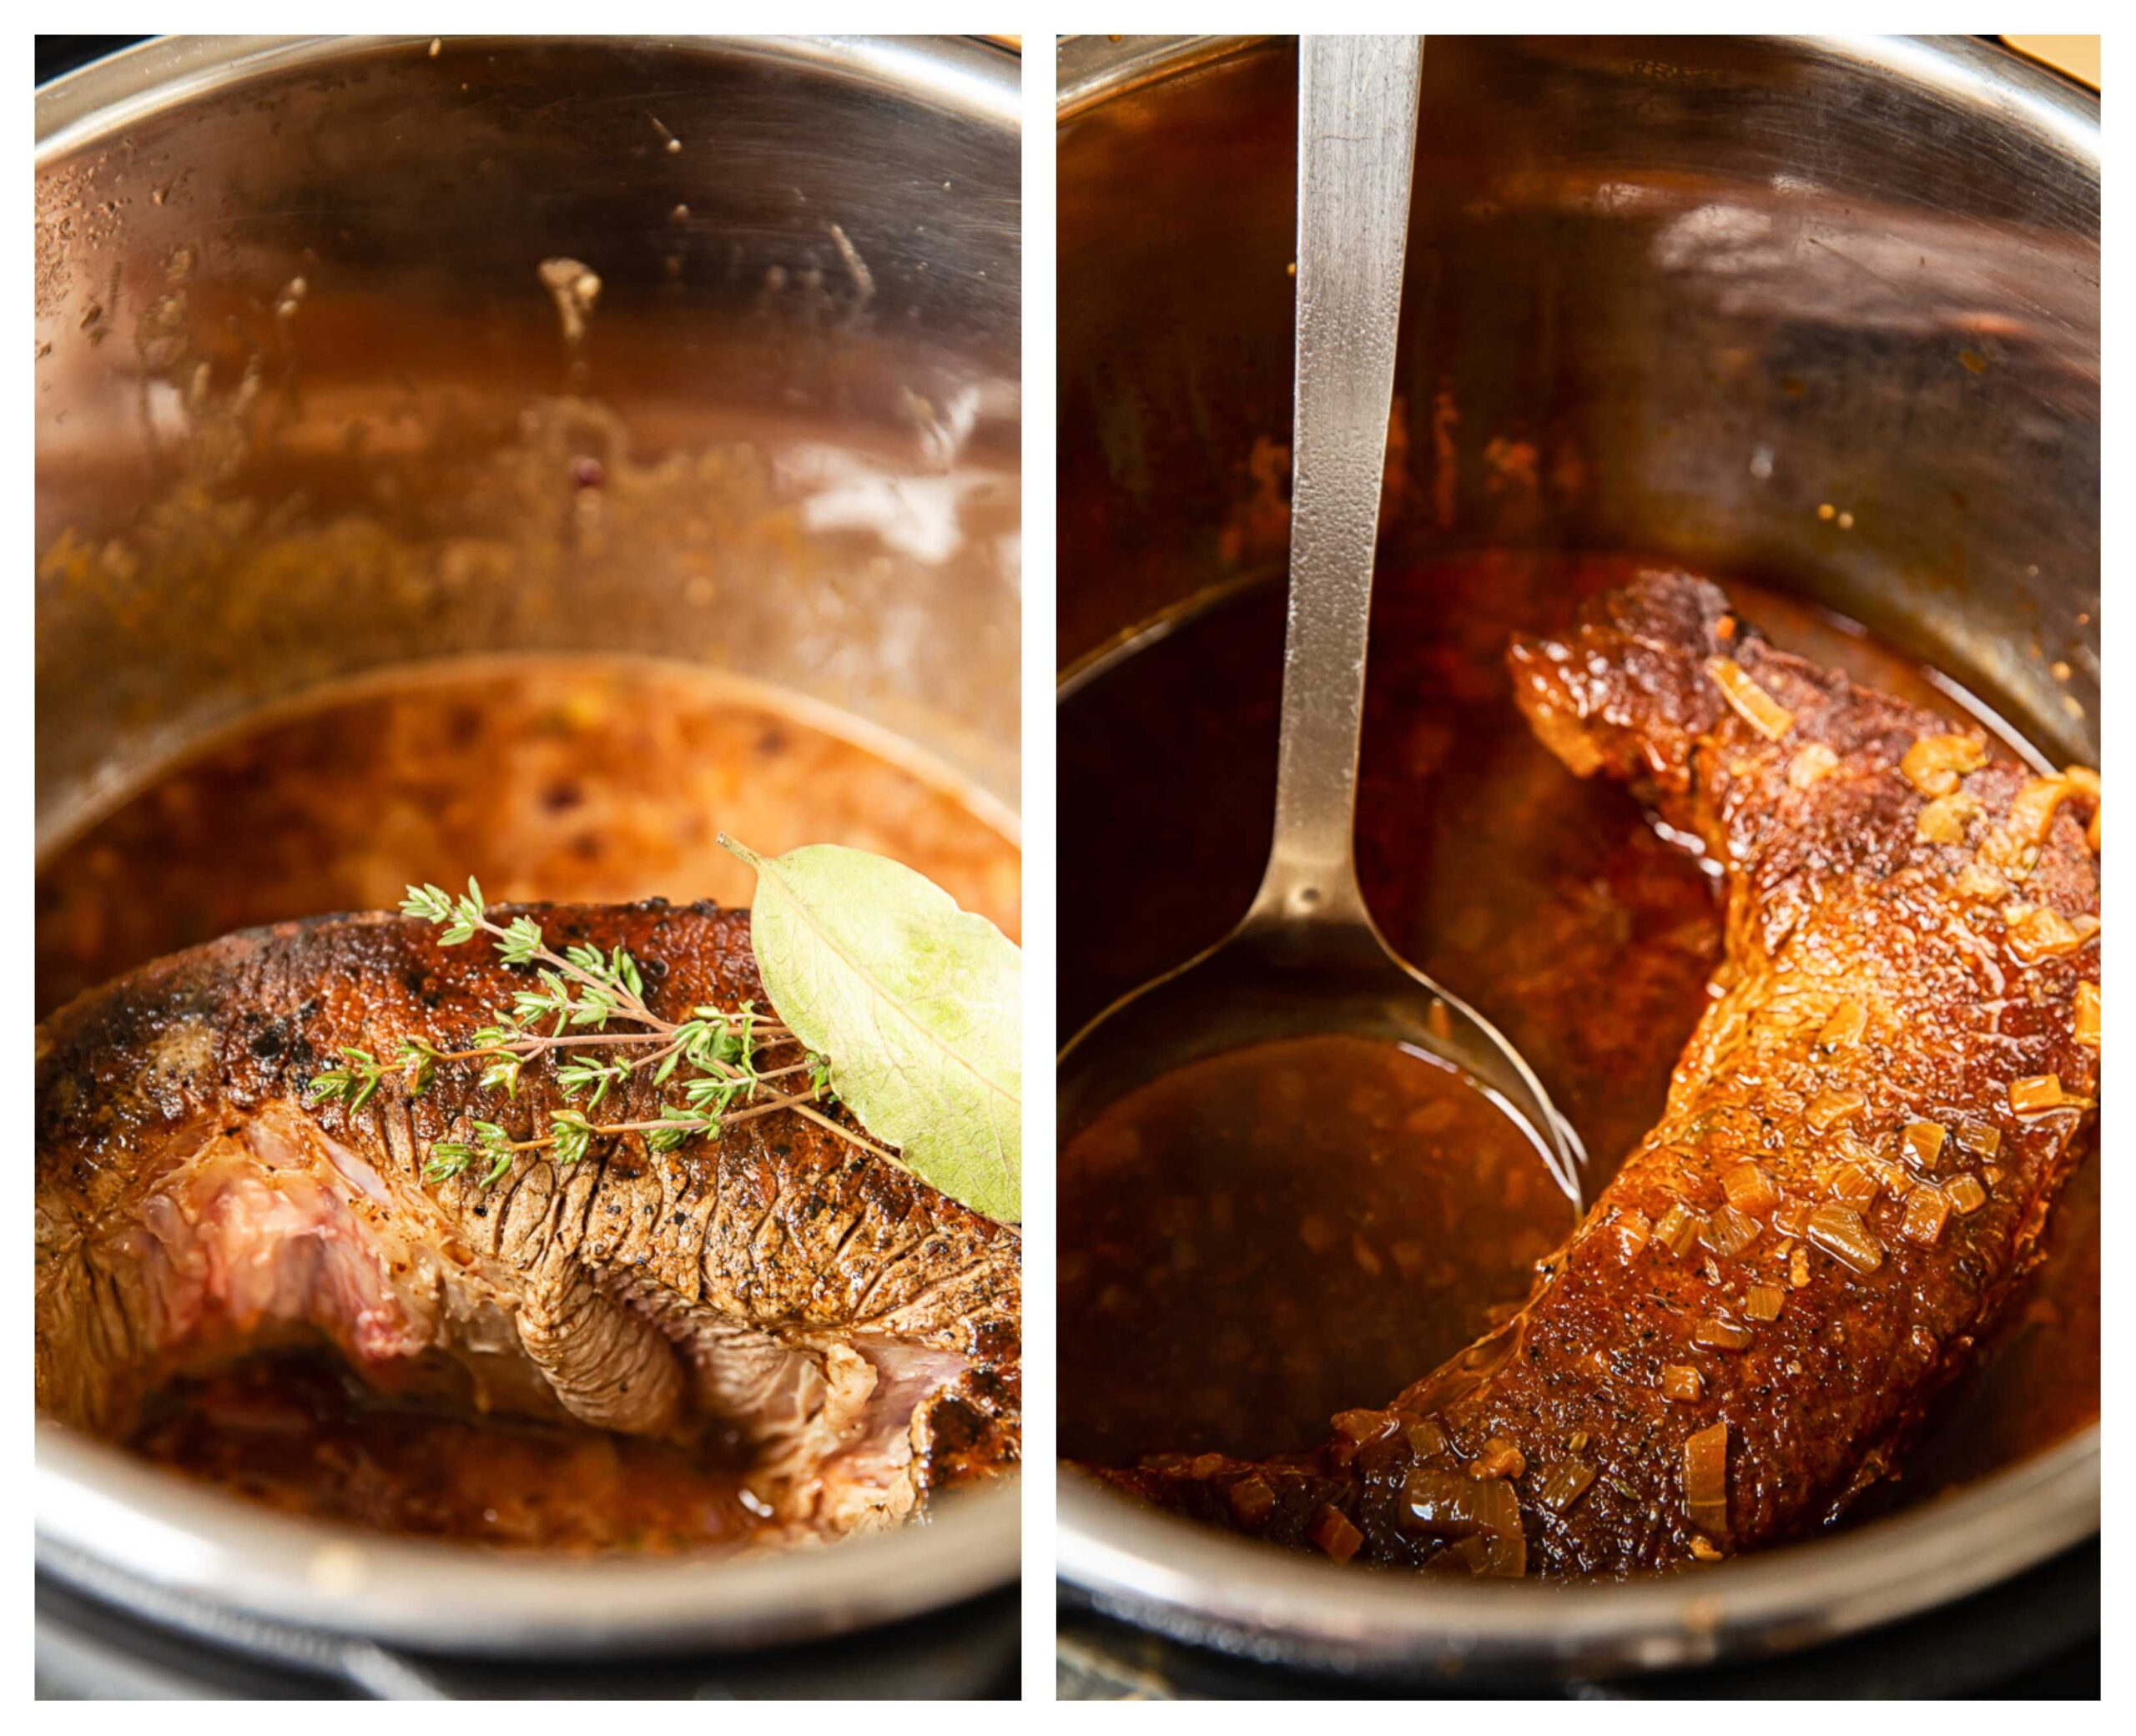 beef brisket in Instant pot before and after cooking